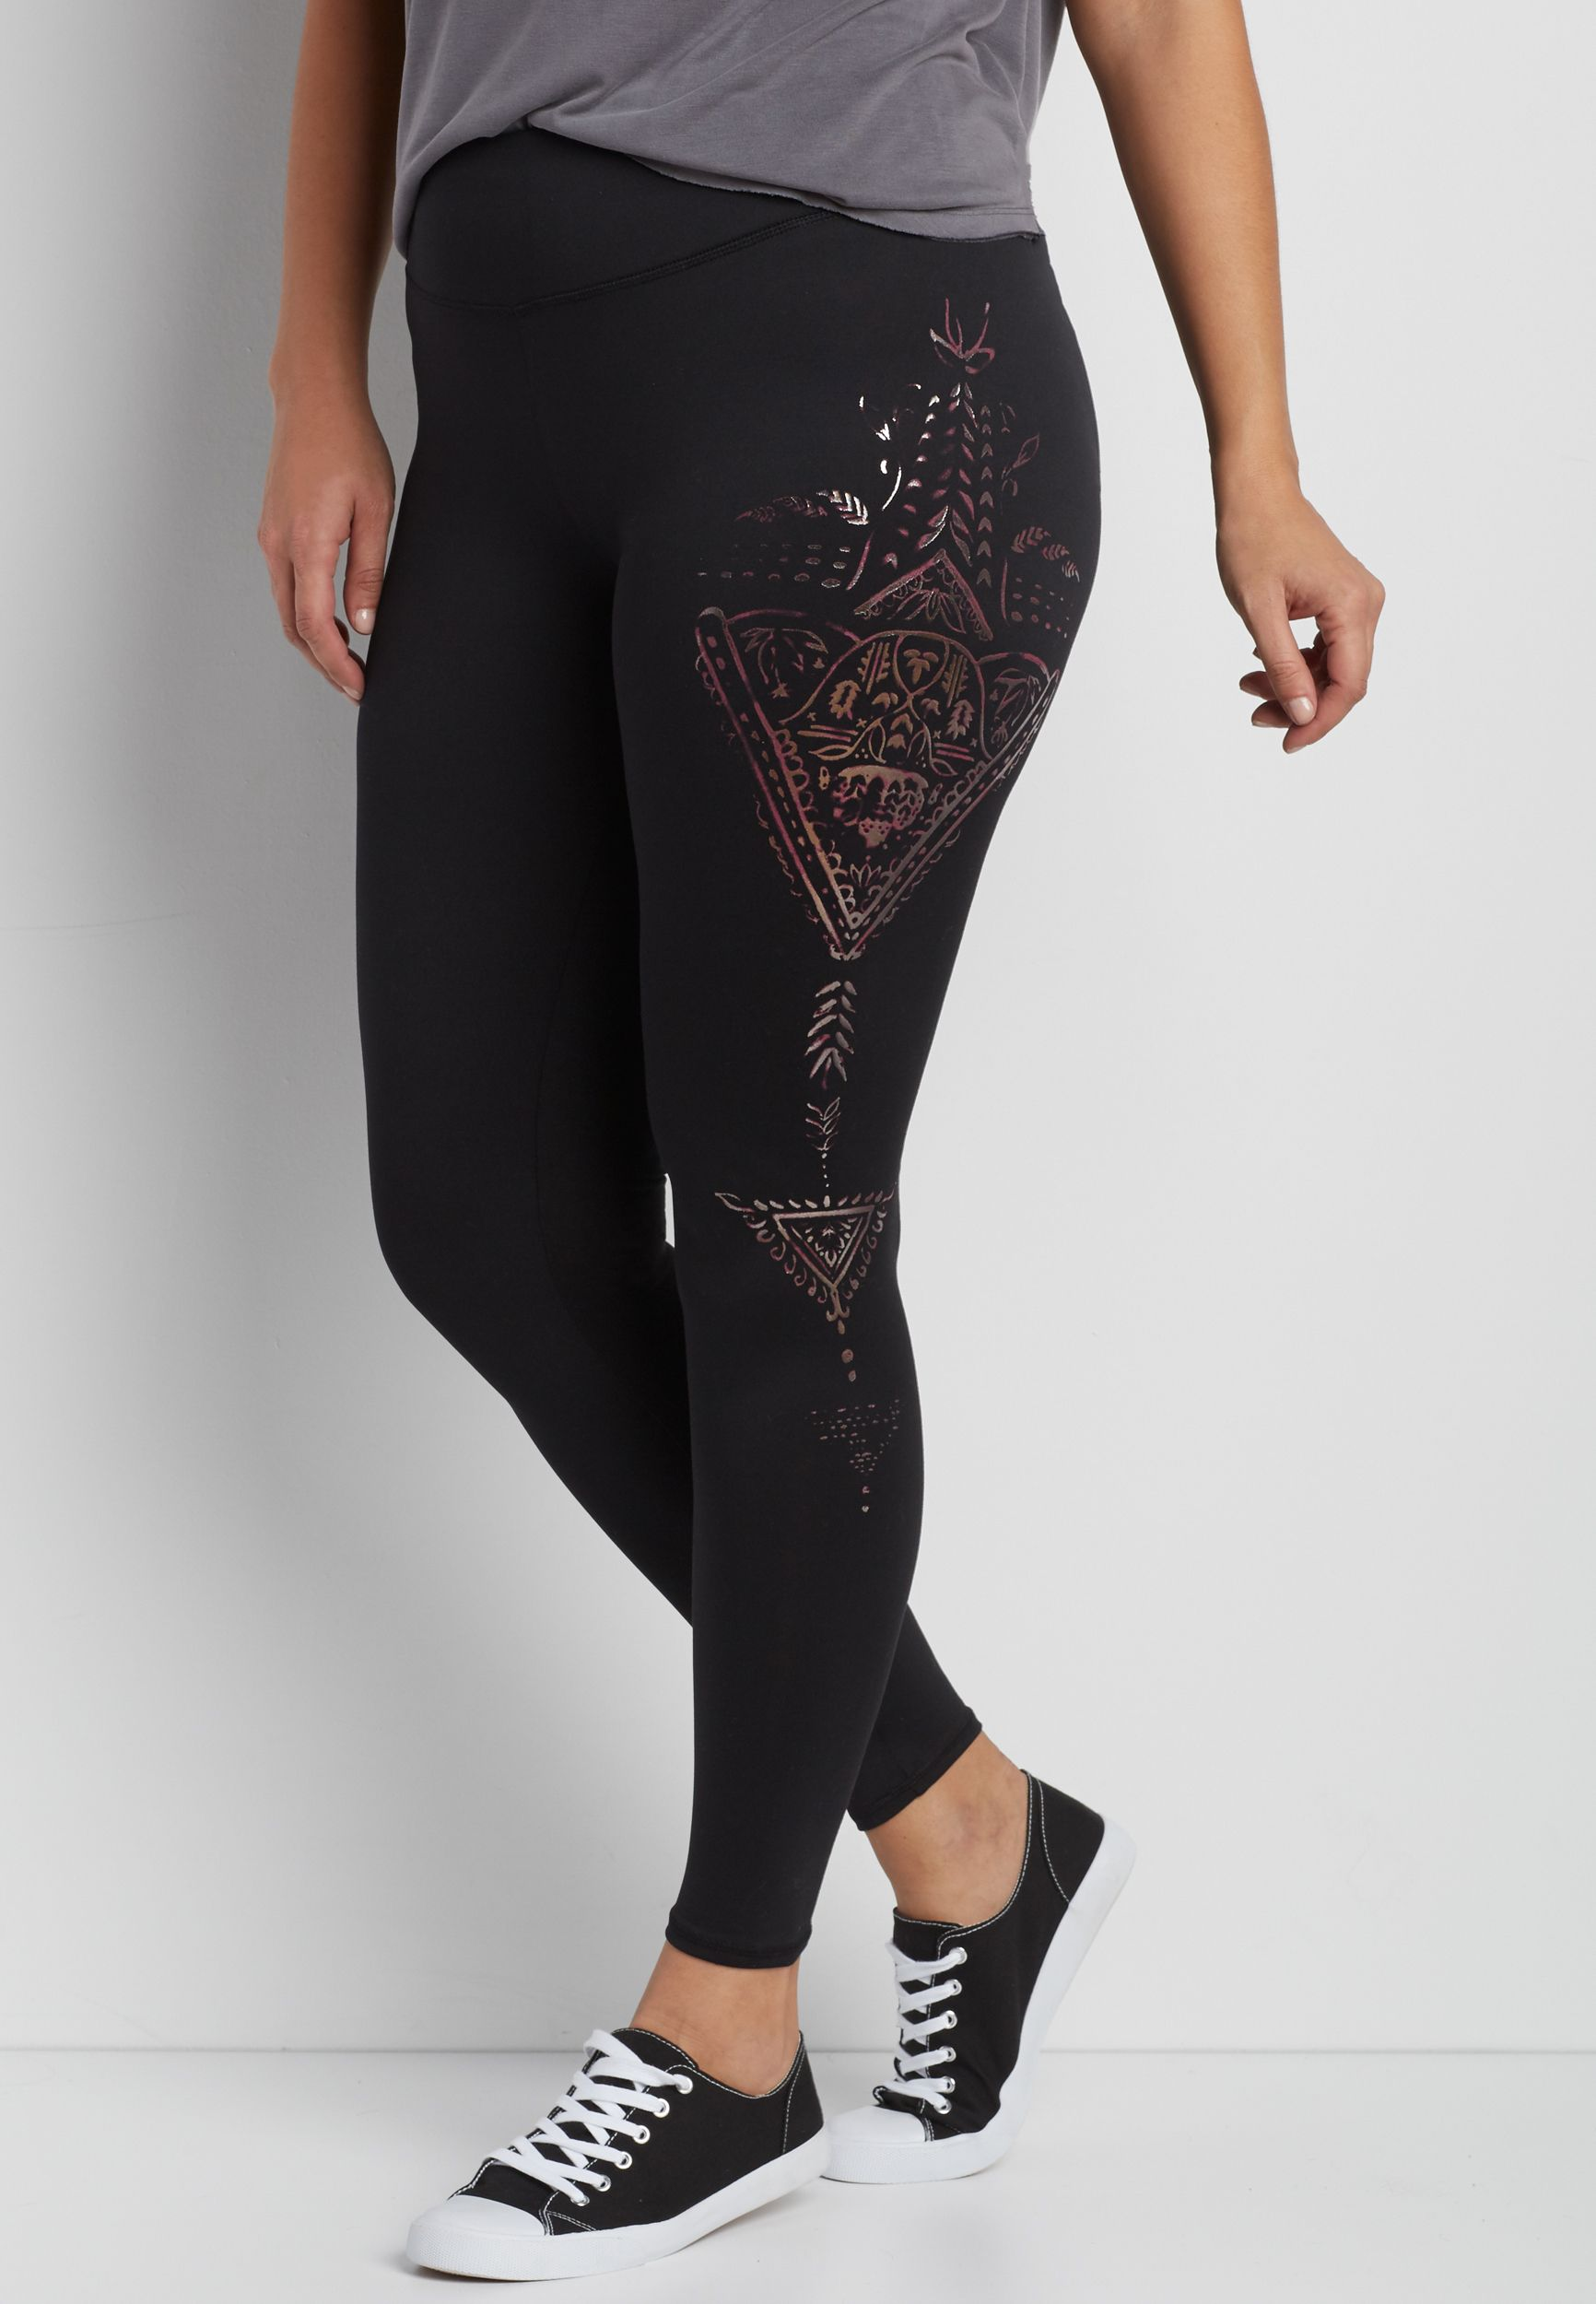 8e3801c6a08 plus size legging with metallic graphic side